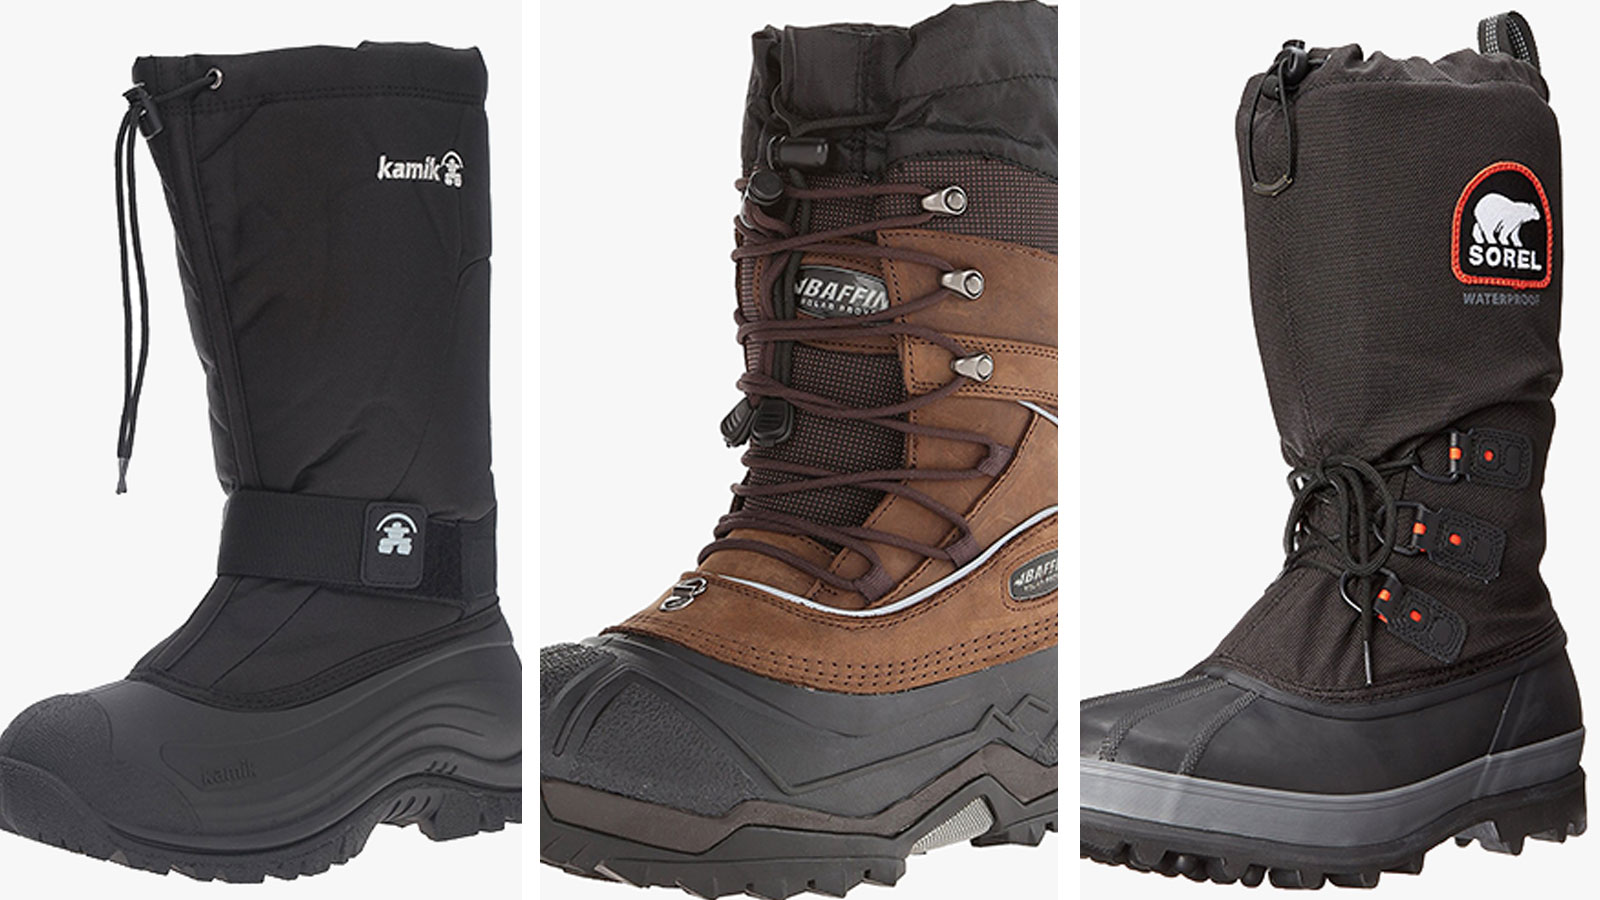 Best Mens Winter Boots For Extreme Cold Weather